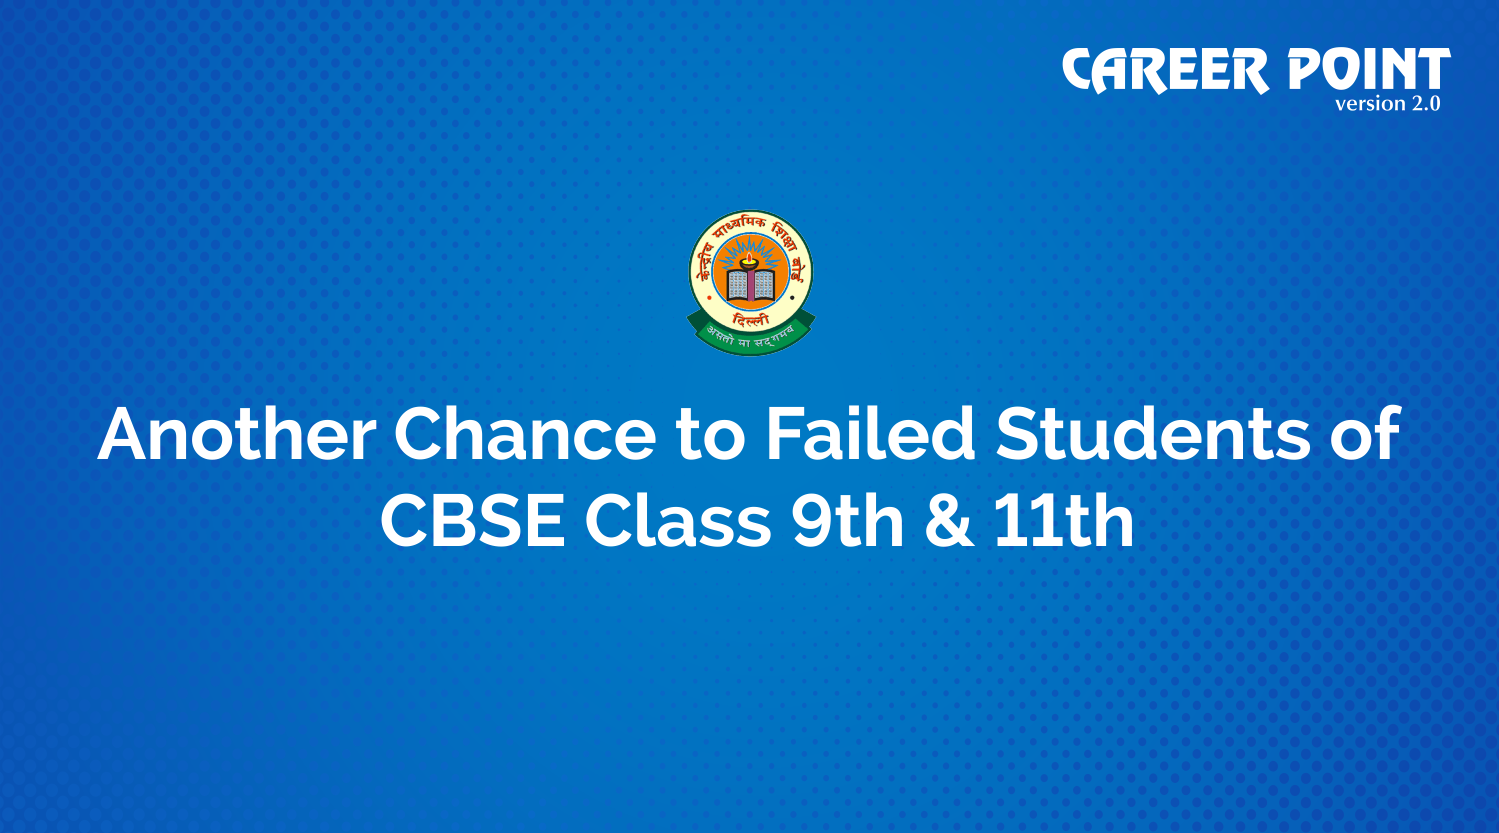 Another chance to failed students of CBSE Class 9th & 11th